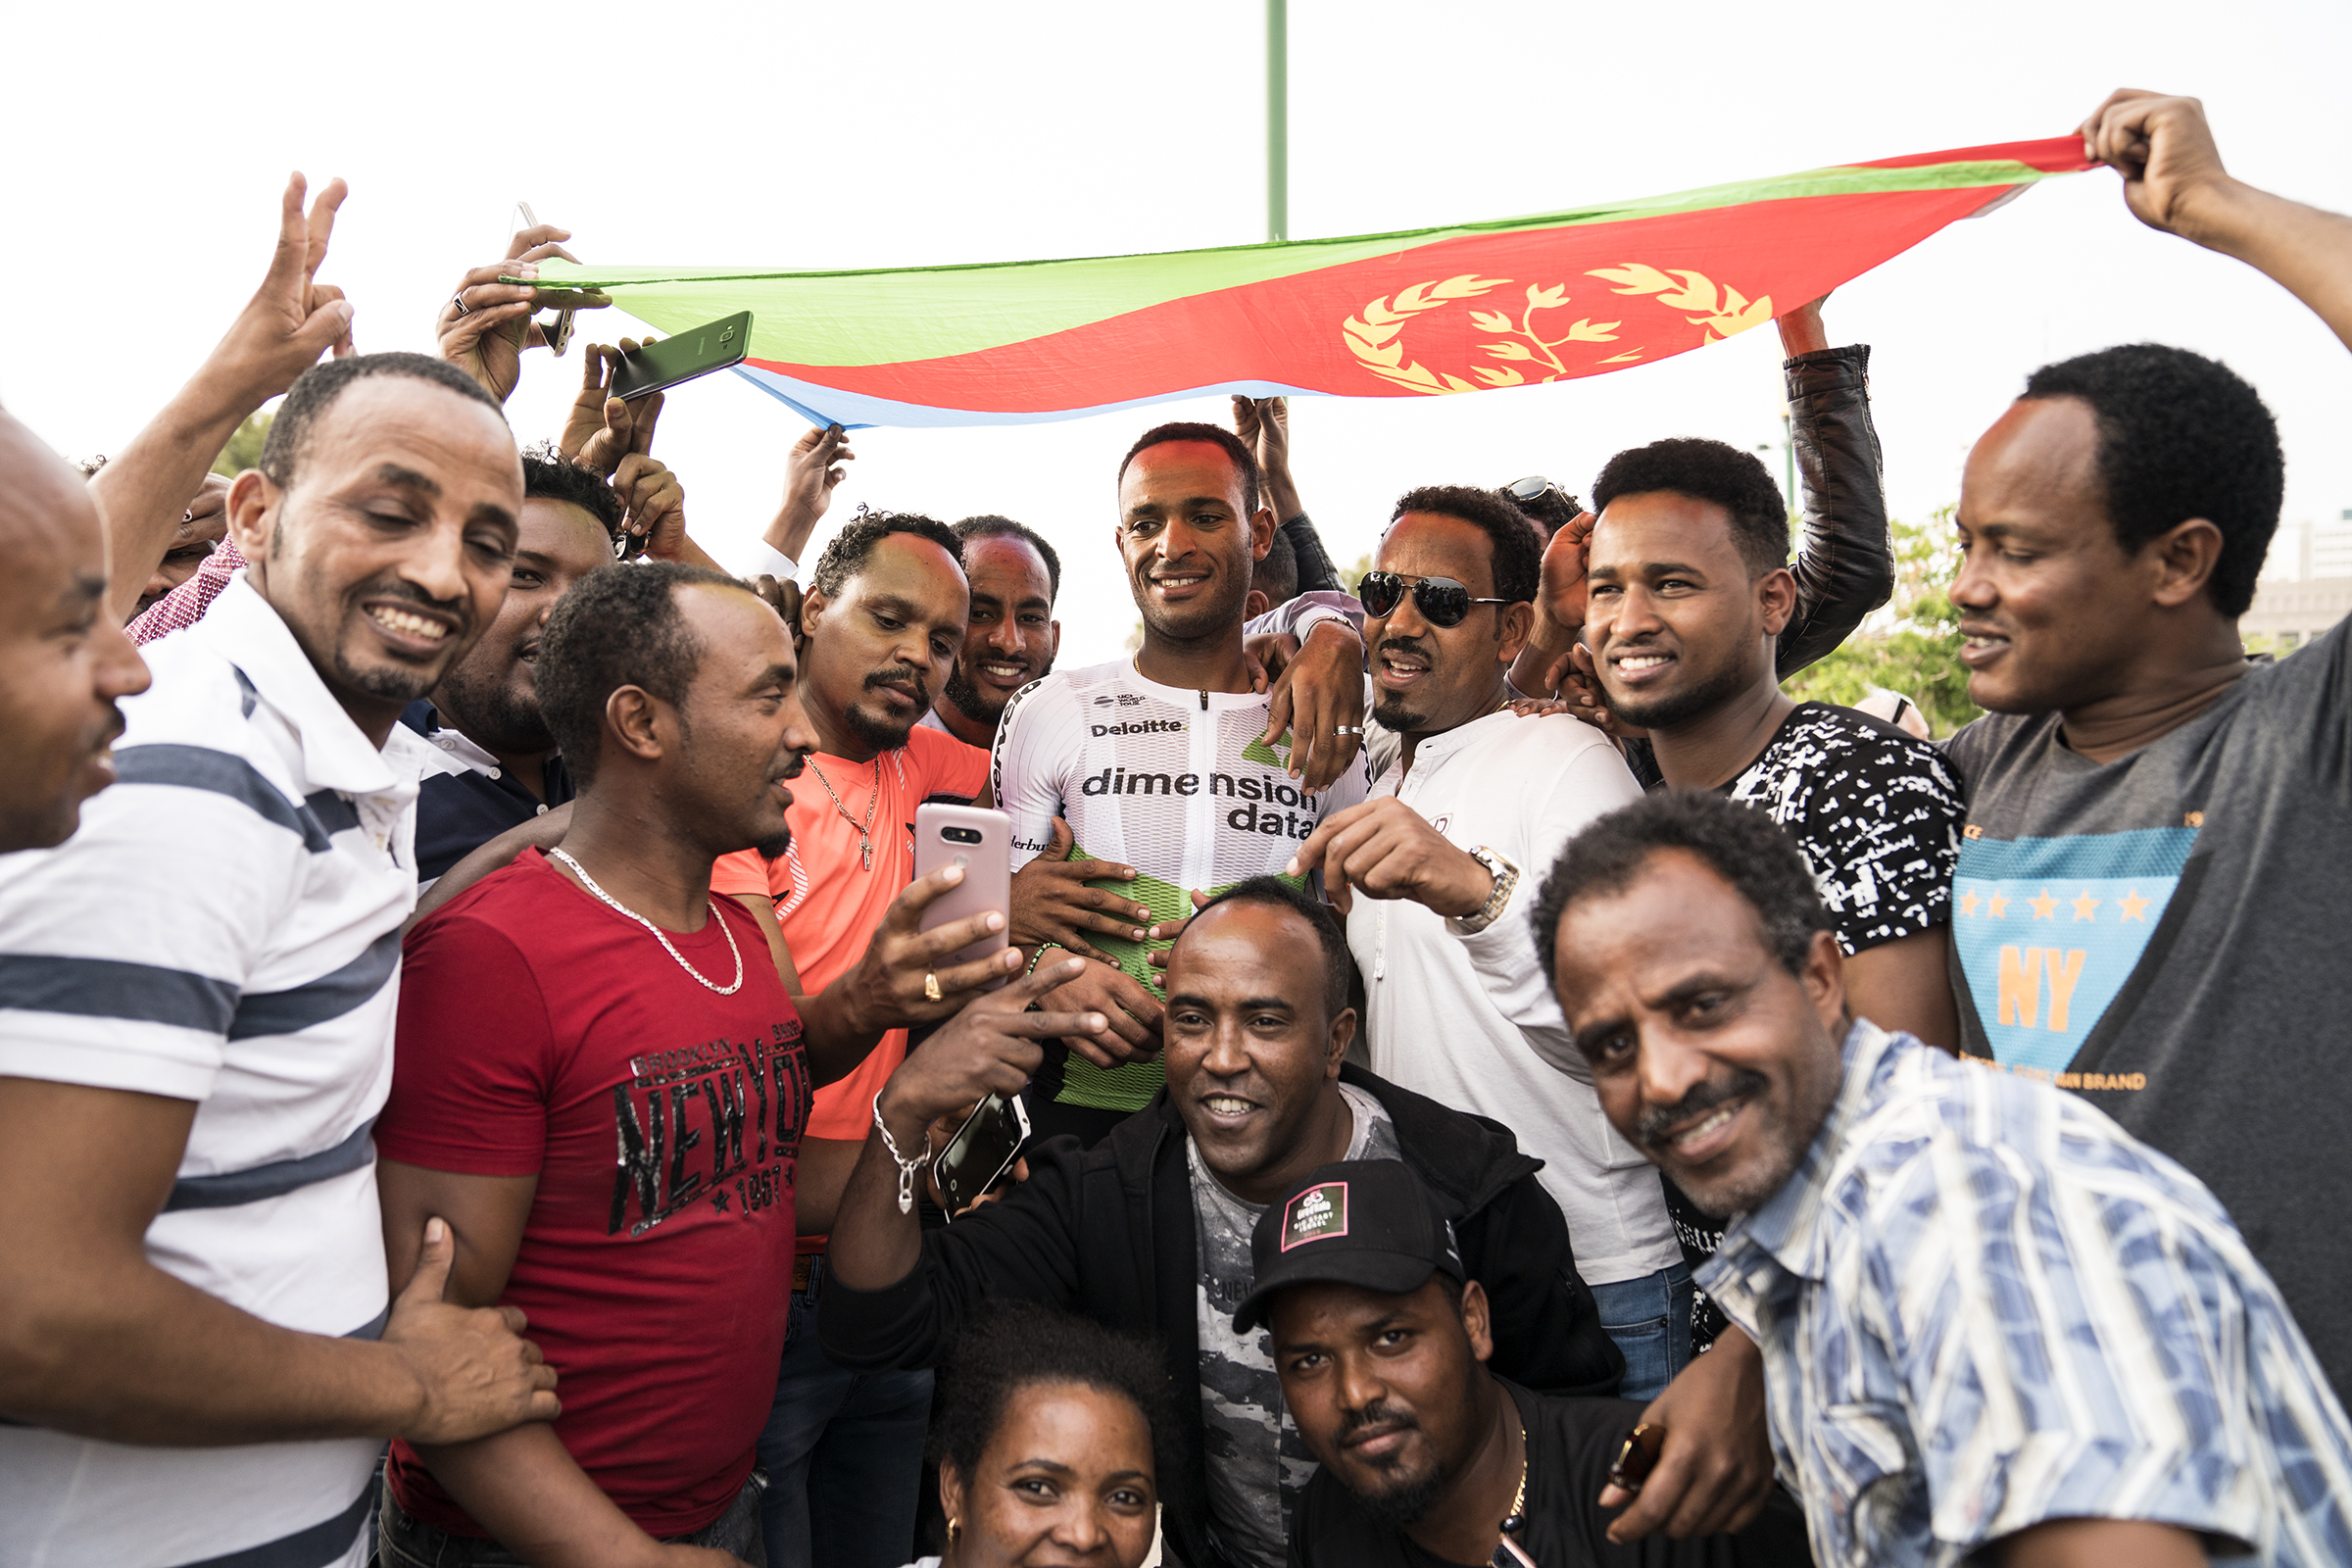 No matter where we go, the Eritreans are there to support their hero, my roommate, Natnael Berhane.